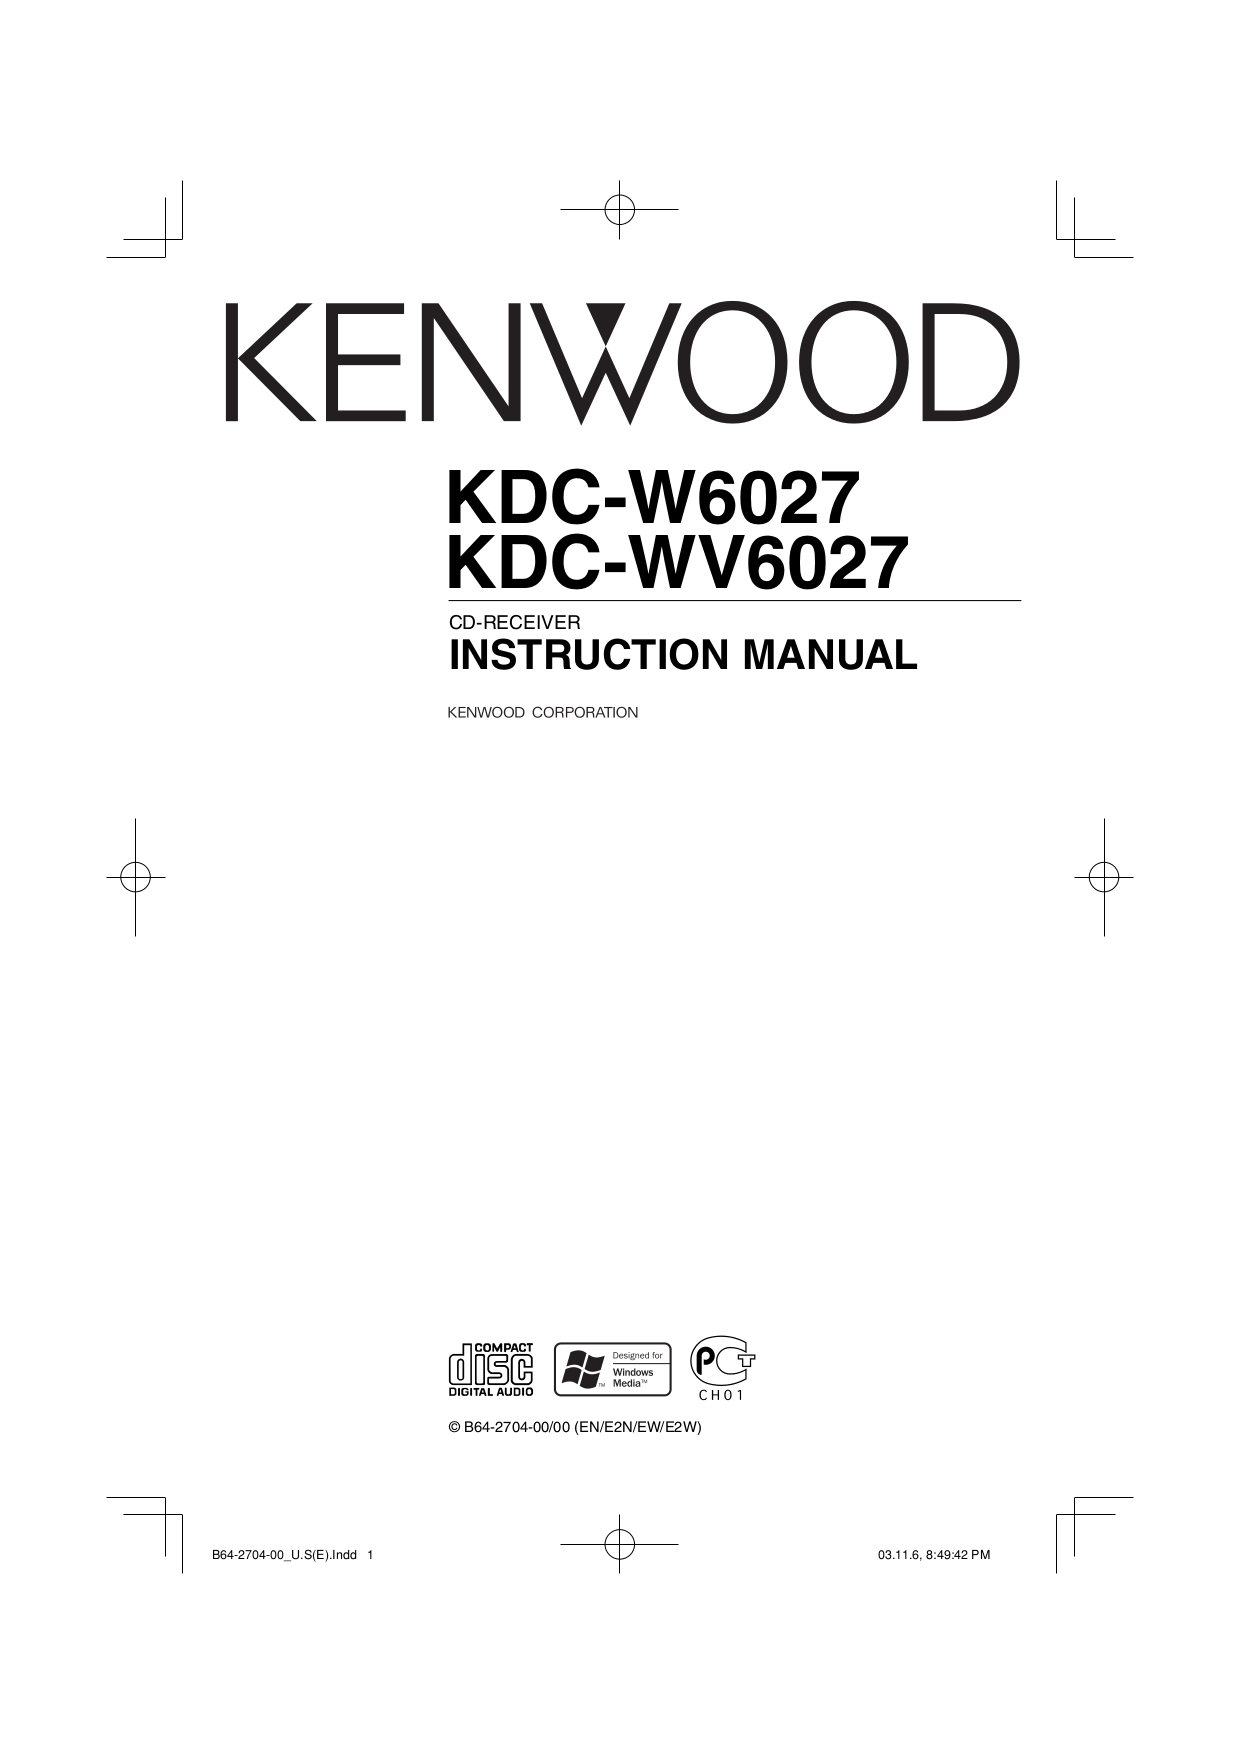 Download free pdf for Kenwood KDC-128 Car Receiver manual